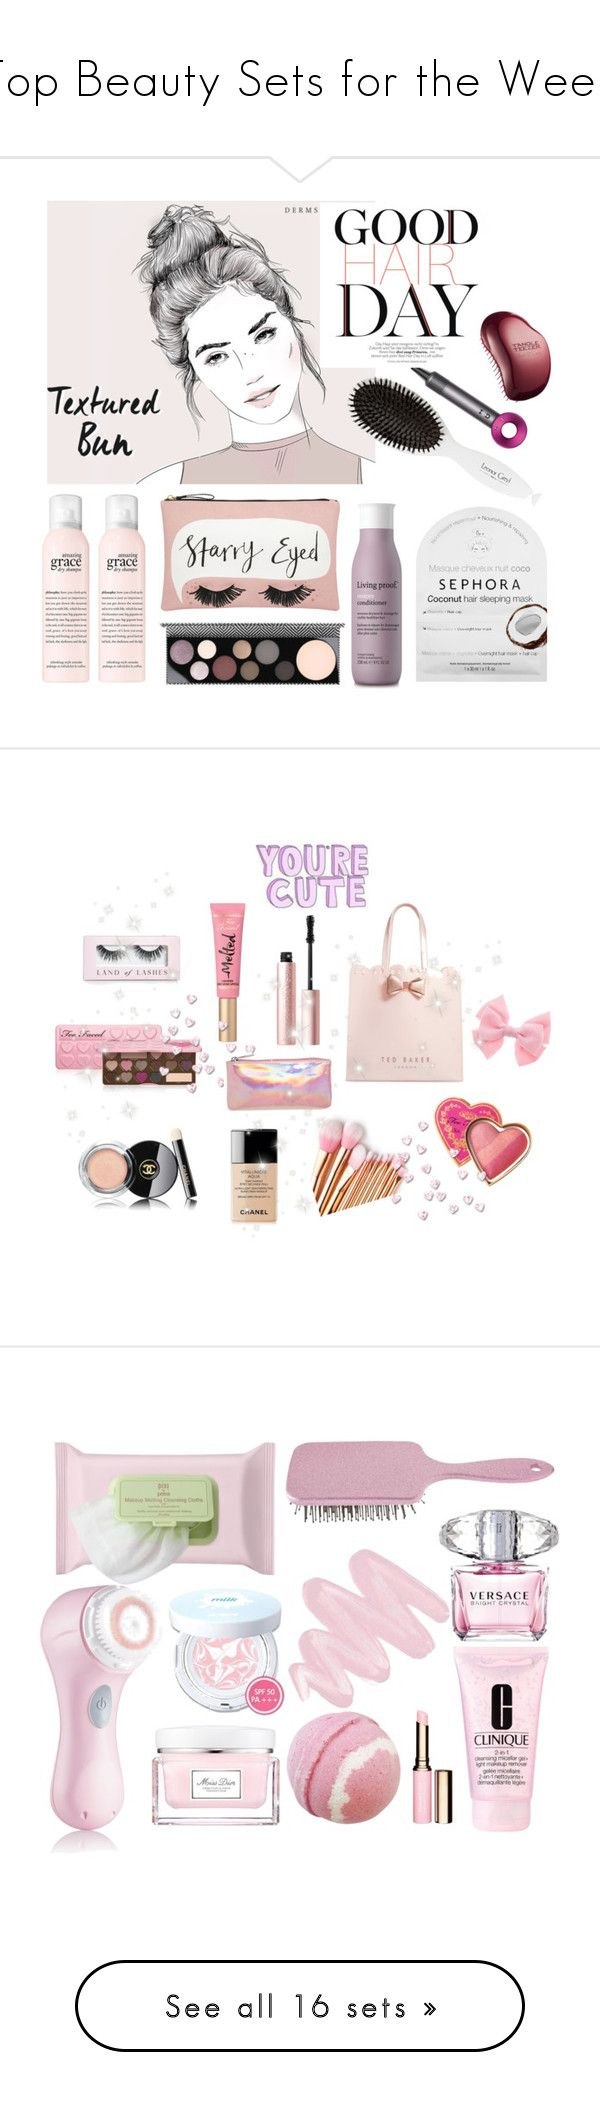 """""""Top Beauty Sets for the Week"""" by polyvore ❤ liked on Polyvore featuring beauty, Accessorize, MAC Cosmetics, Leonor Greyl, Sephora Collection, Living Proof, Dyson, Tangle Teezer, Too Faced Cosmetics and Ted Baker"""